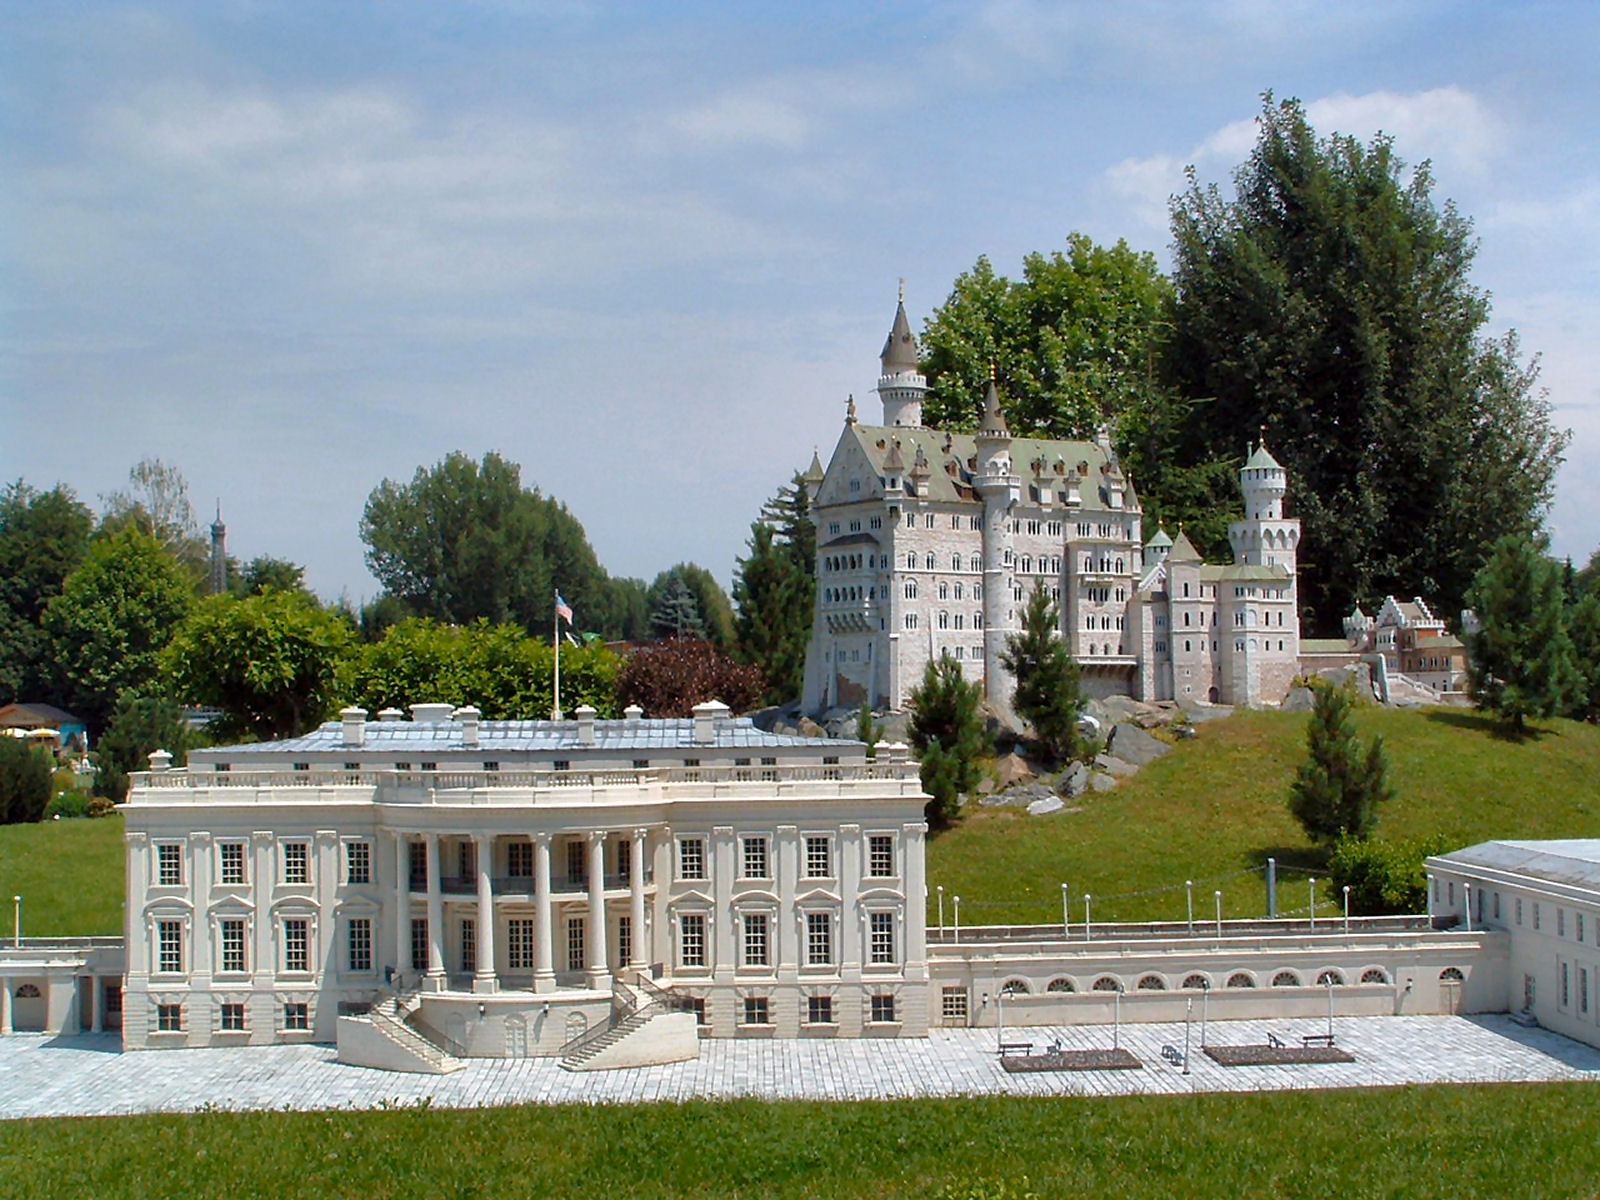 Models of the Washington's White House and Schwangau's Neuschwanstein castle at Minimundus, Klagenfurt, Austria